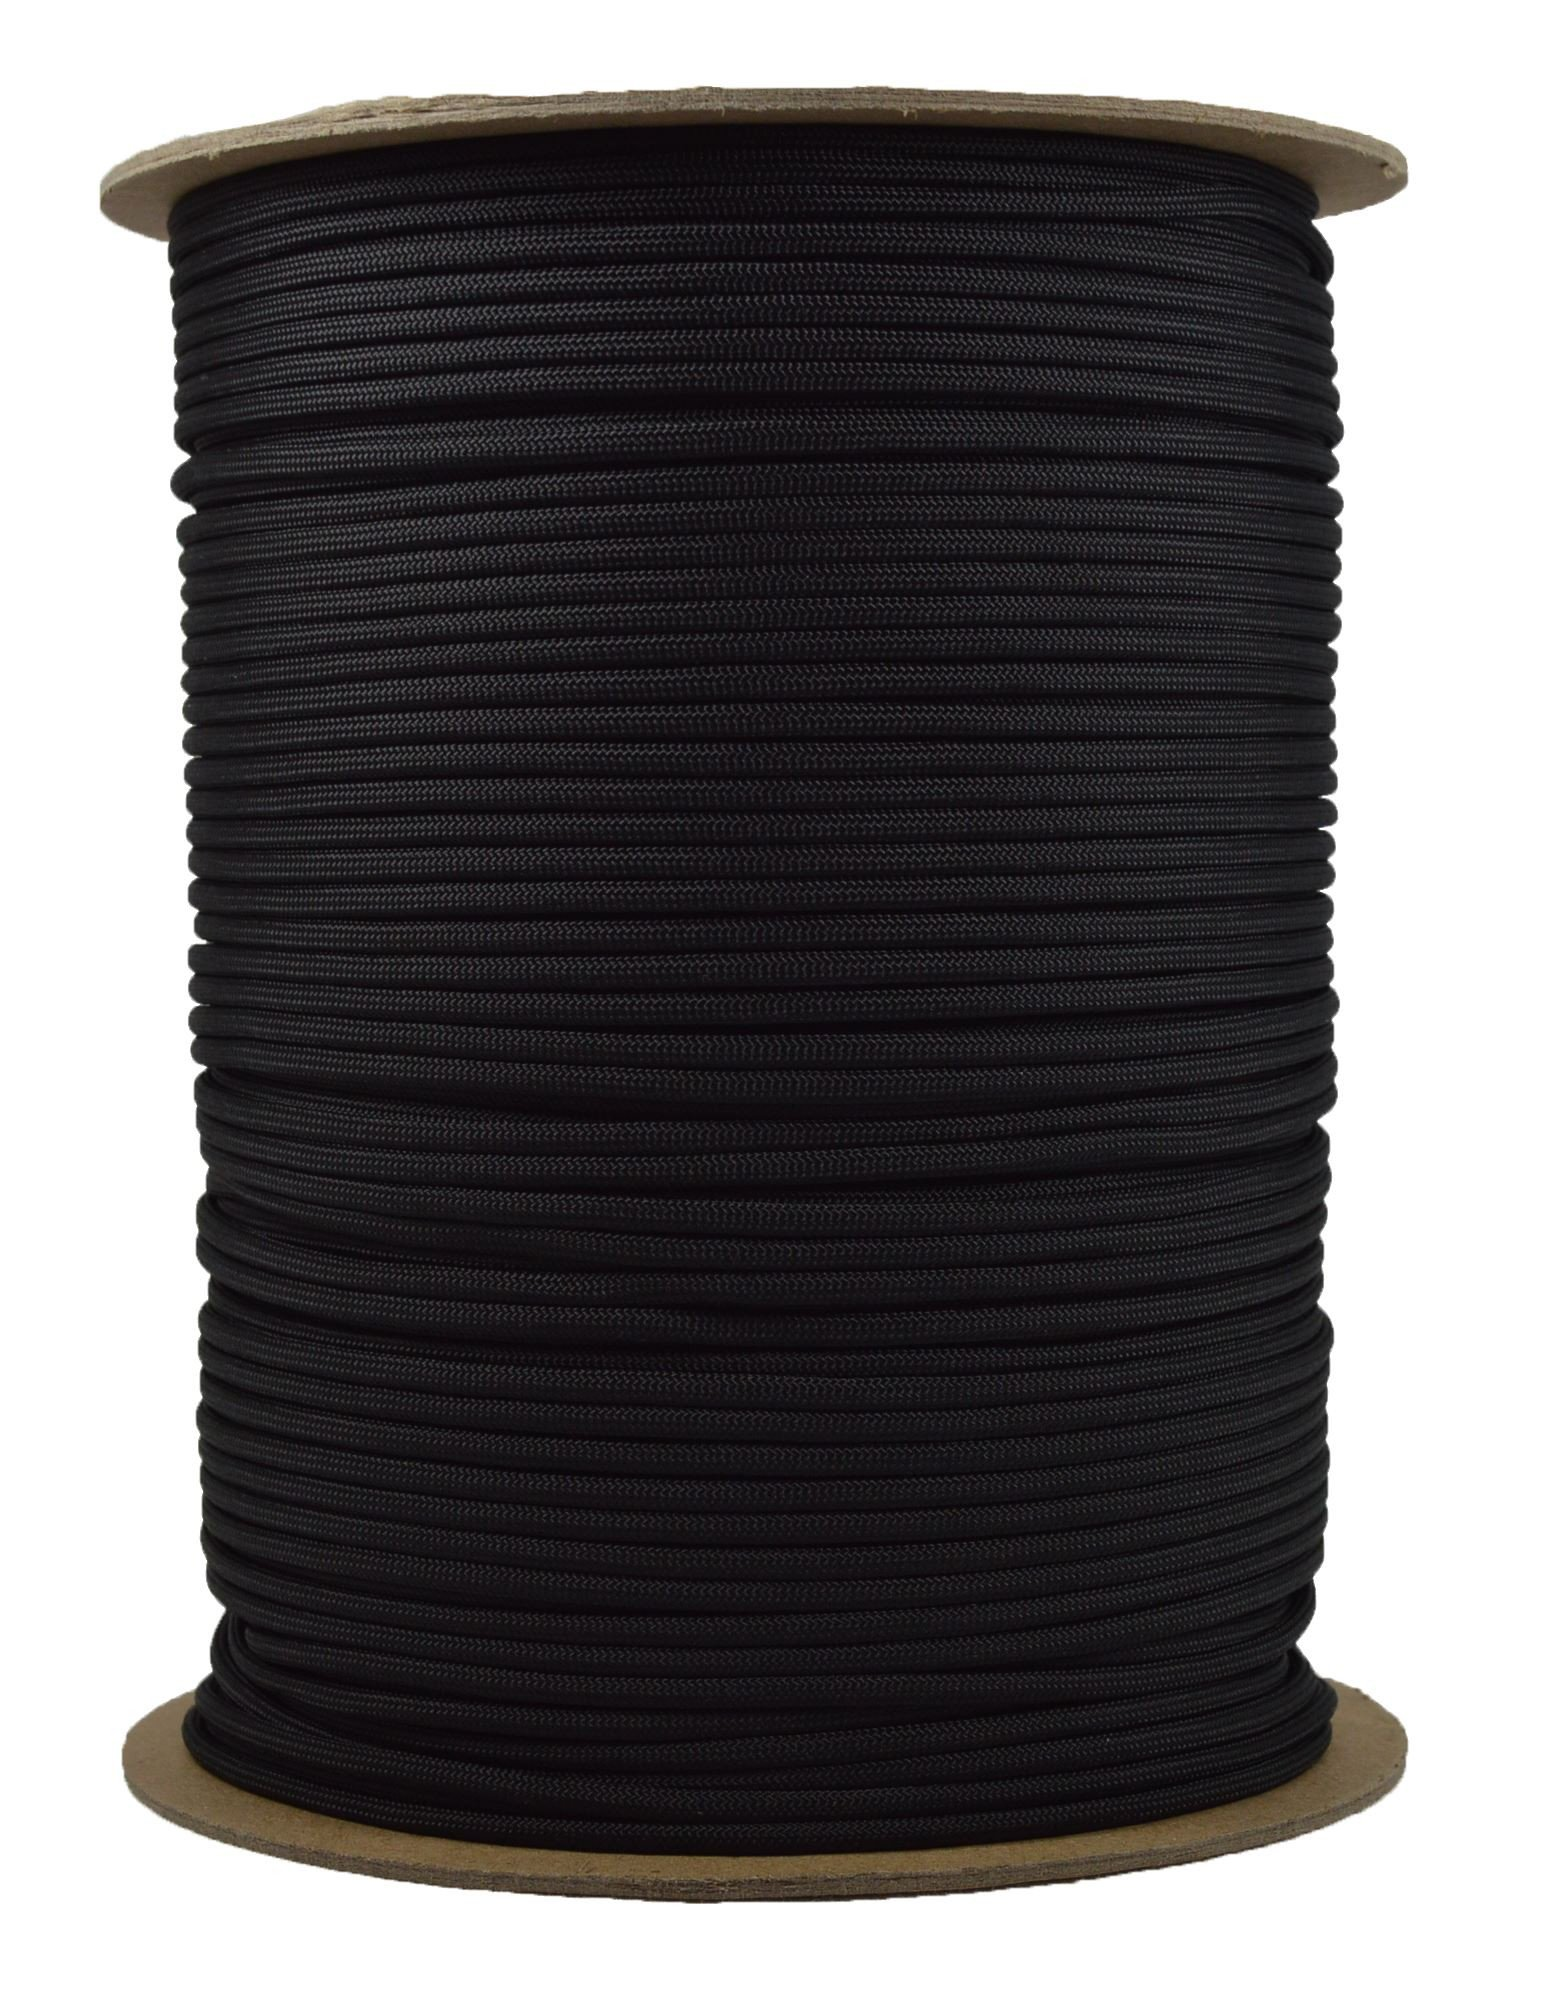 3000 Feet of Black Paracord on Spool - Bored Paracord Brand Type III 7 Strand 550 Cord by BoredParacord